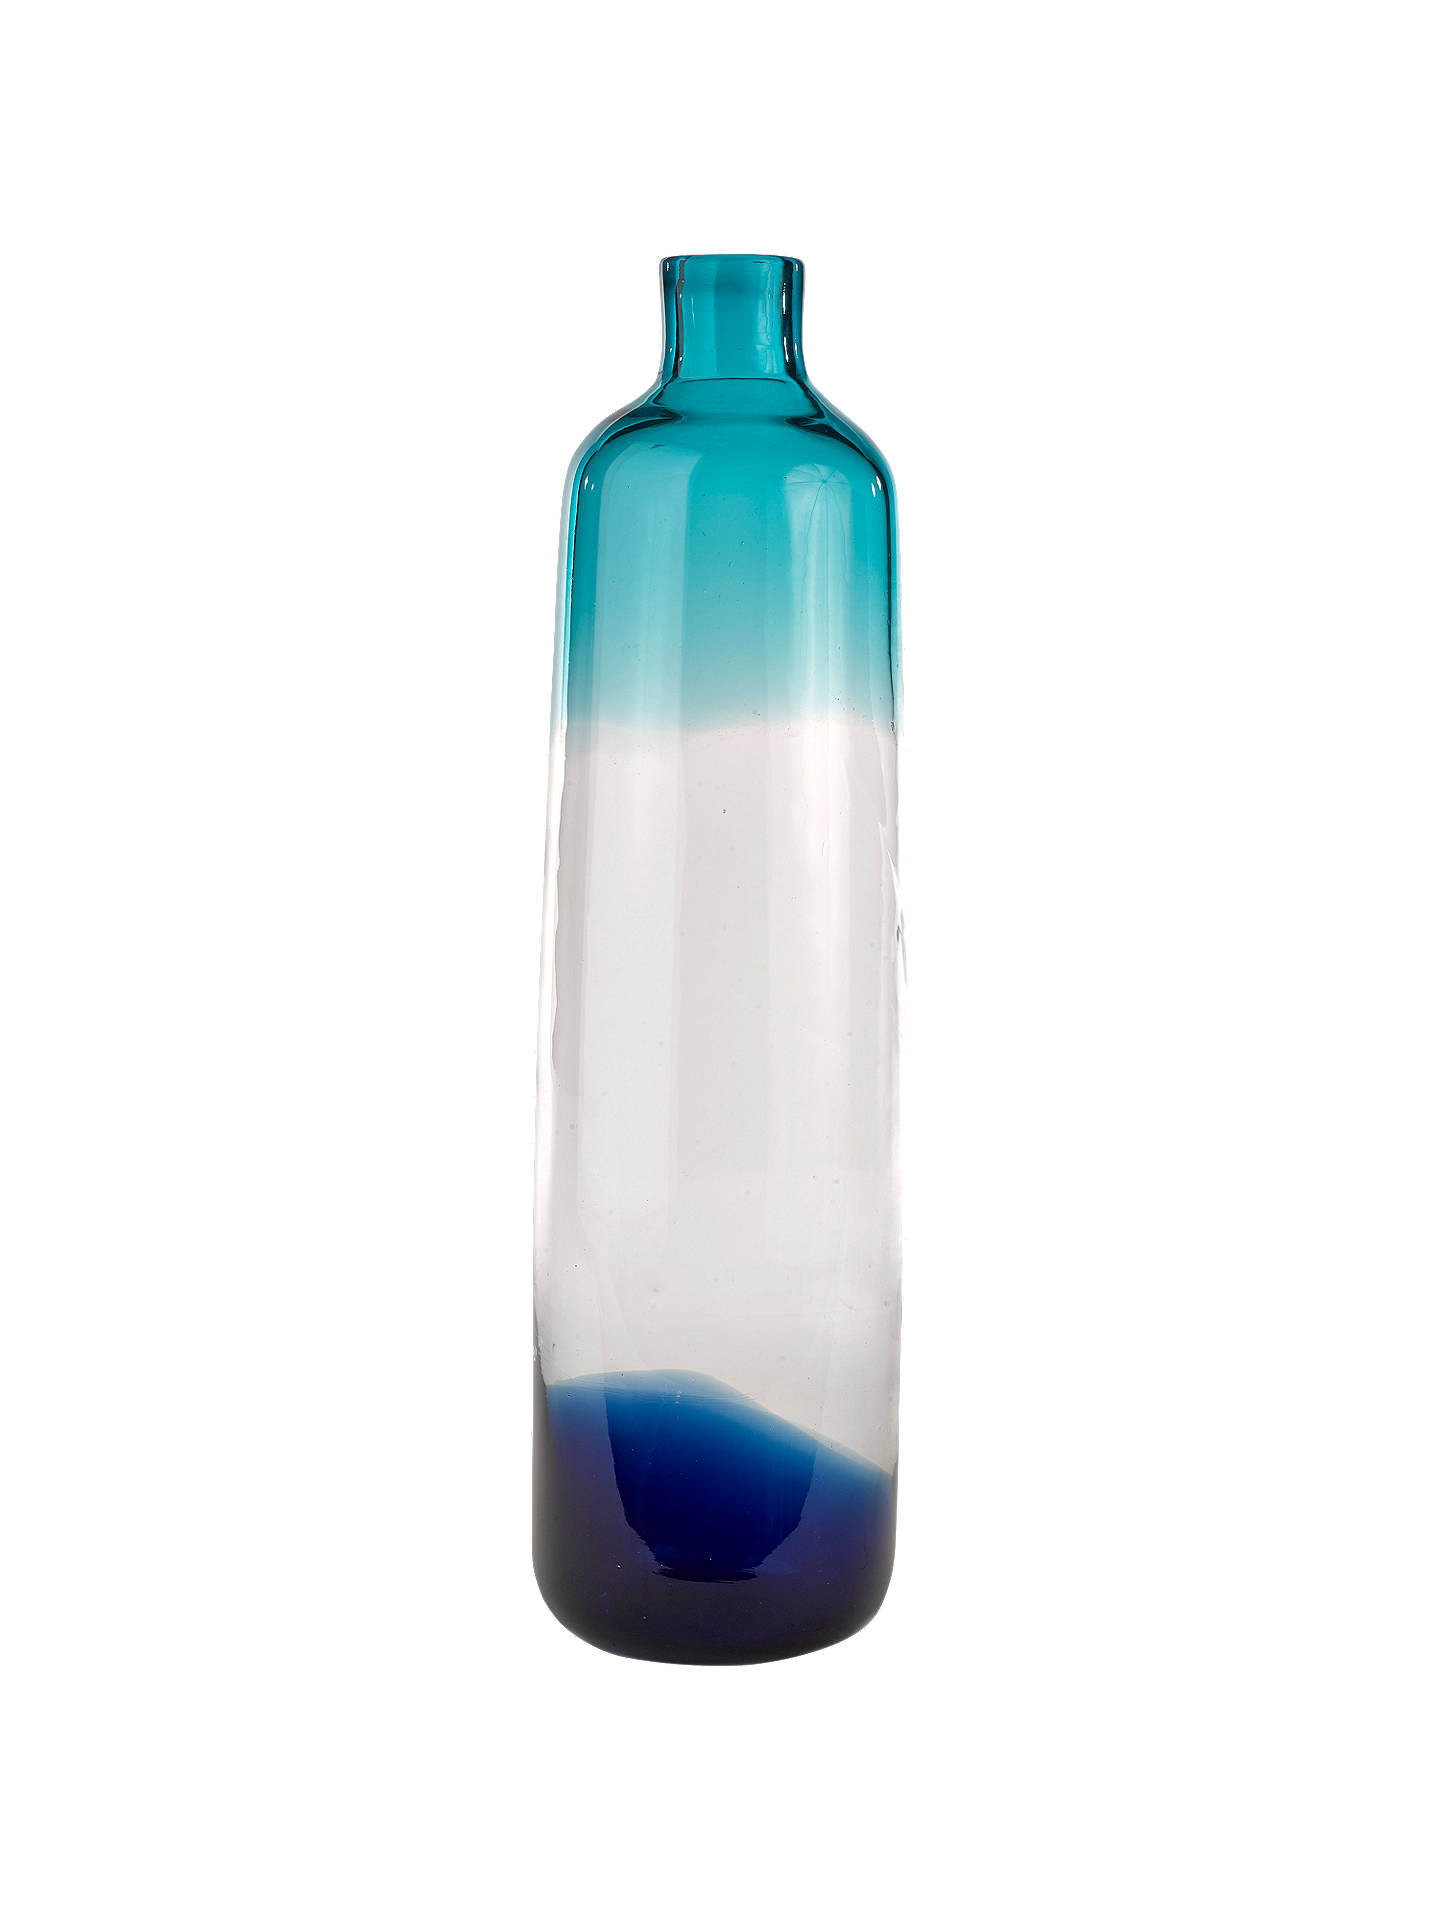 BuyPols Potten Pill Glass Vase, Blue, Large Online at johnlewis.com